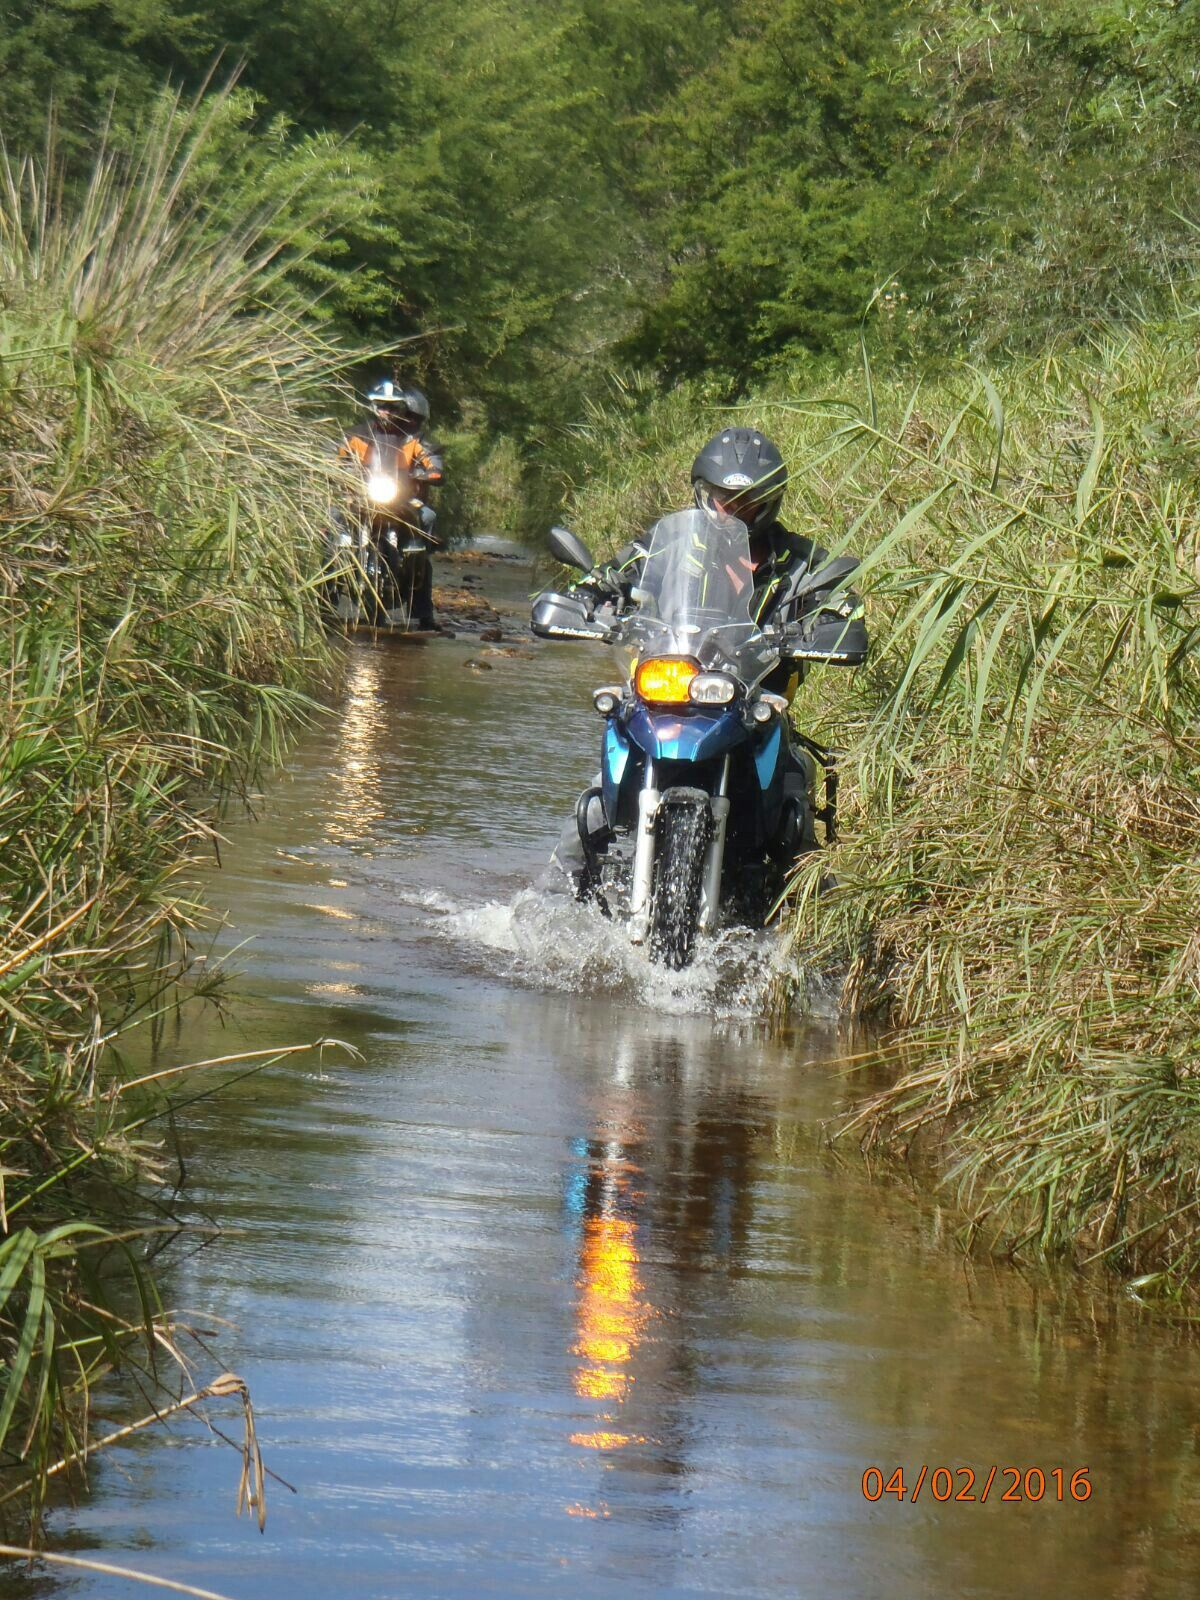 Water crossings can be challenging. Especially with a pillion